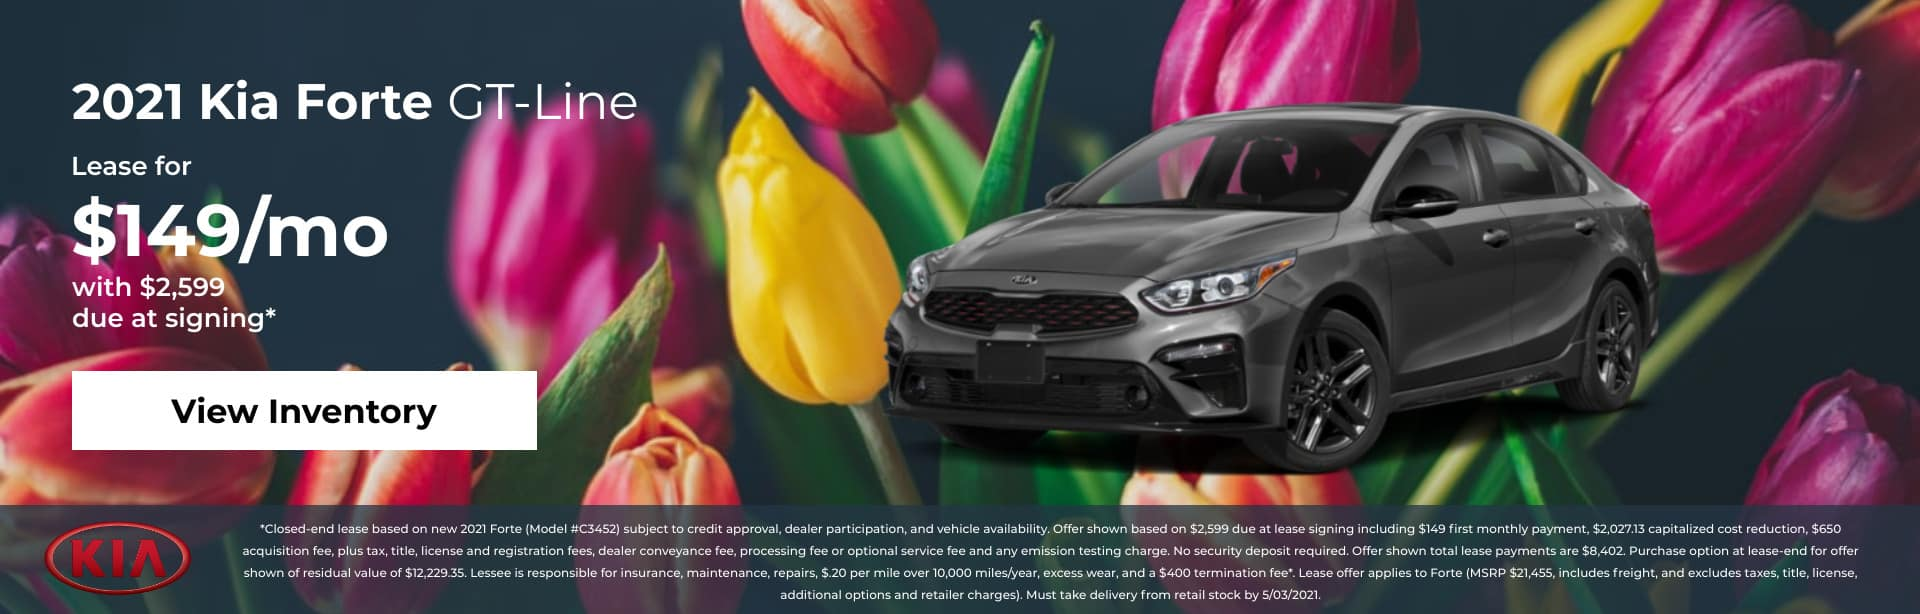 2021 Kia Forte GT-Line: Lease for $149/mo with $2,599 due at signing*